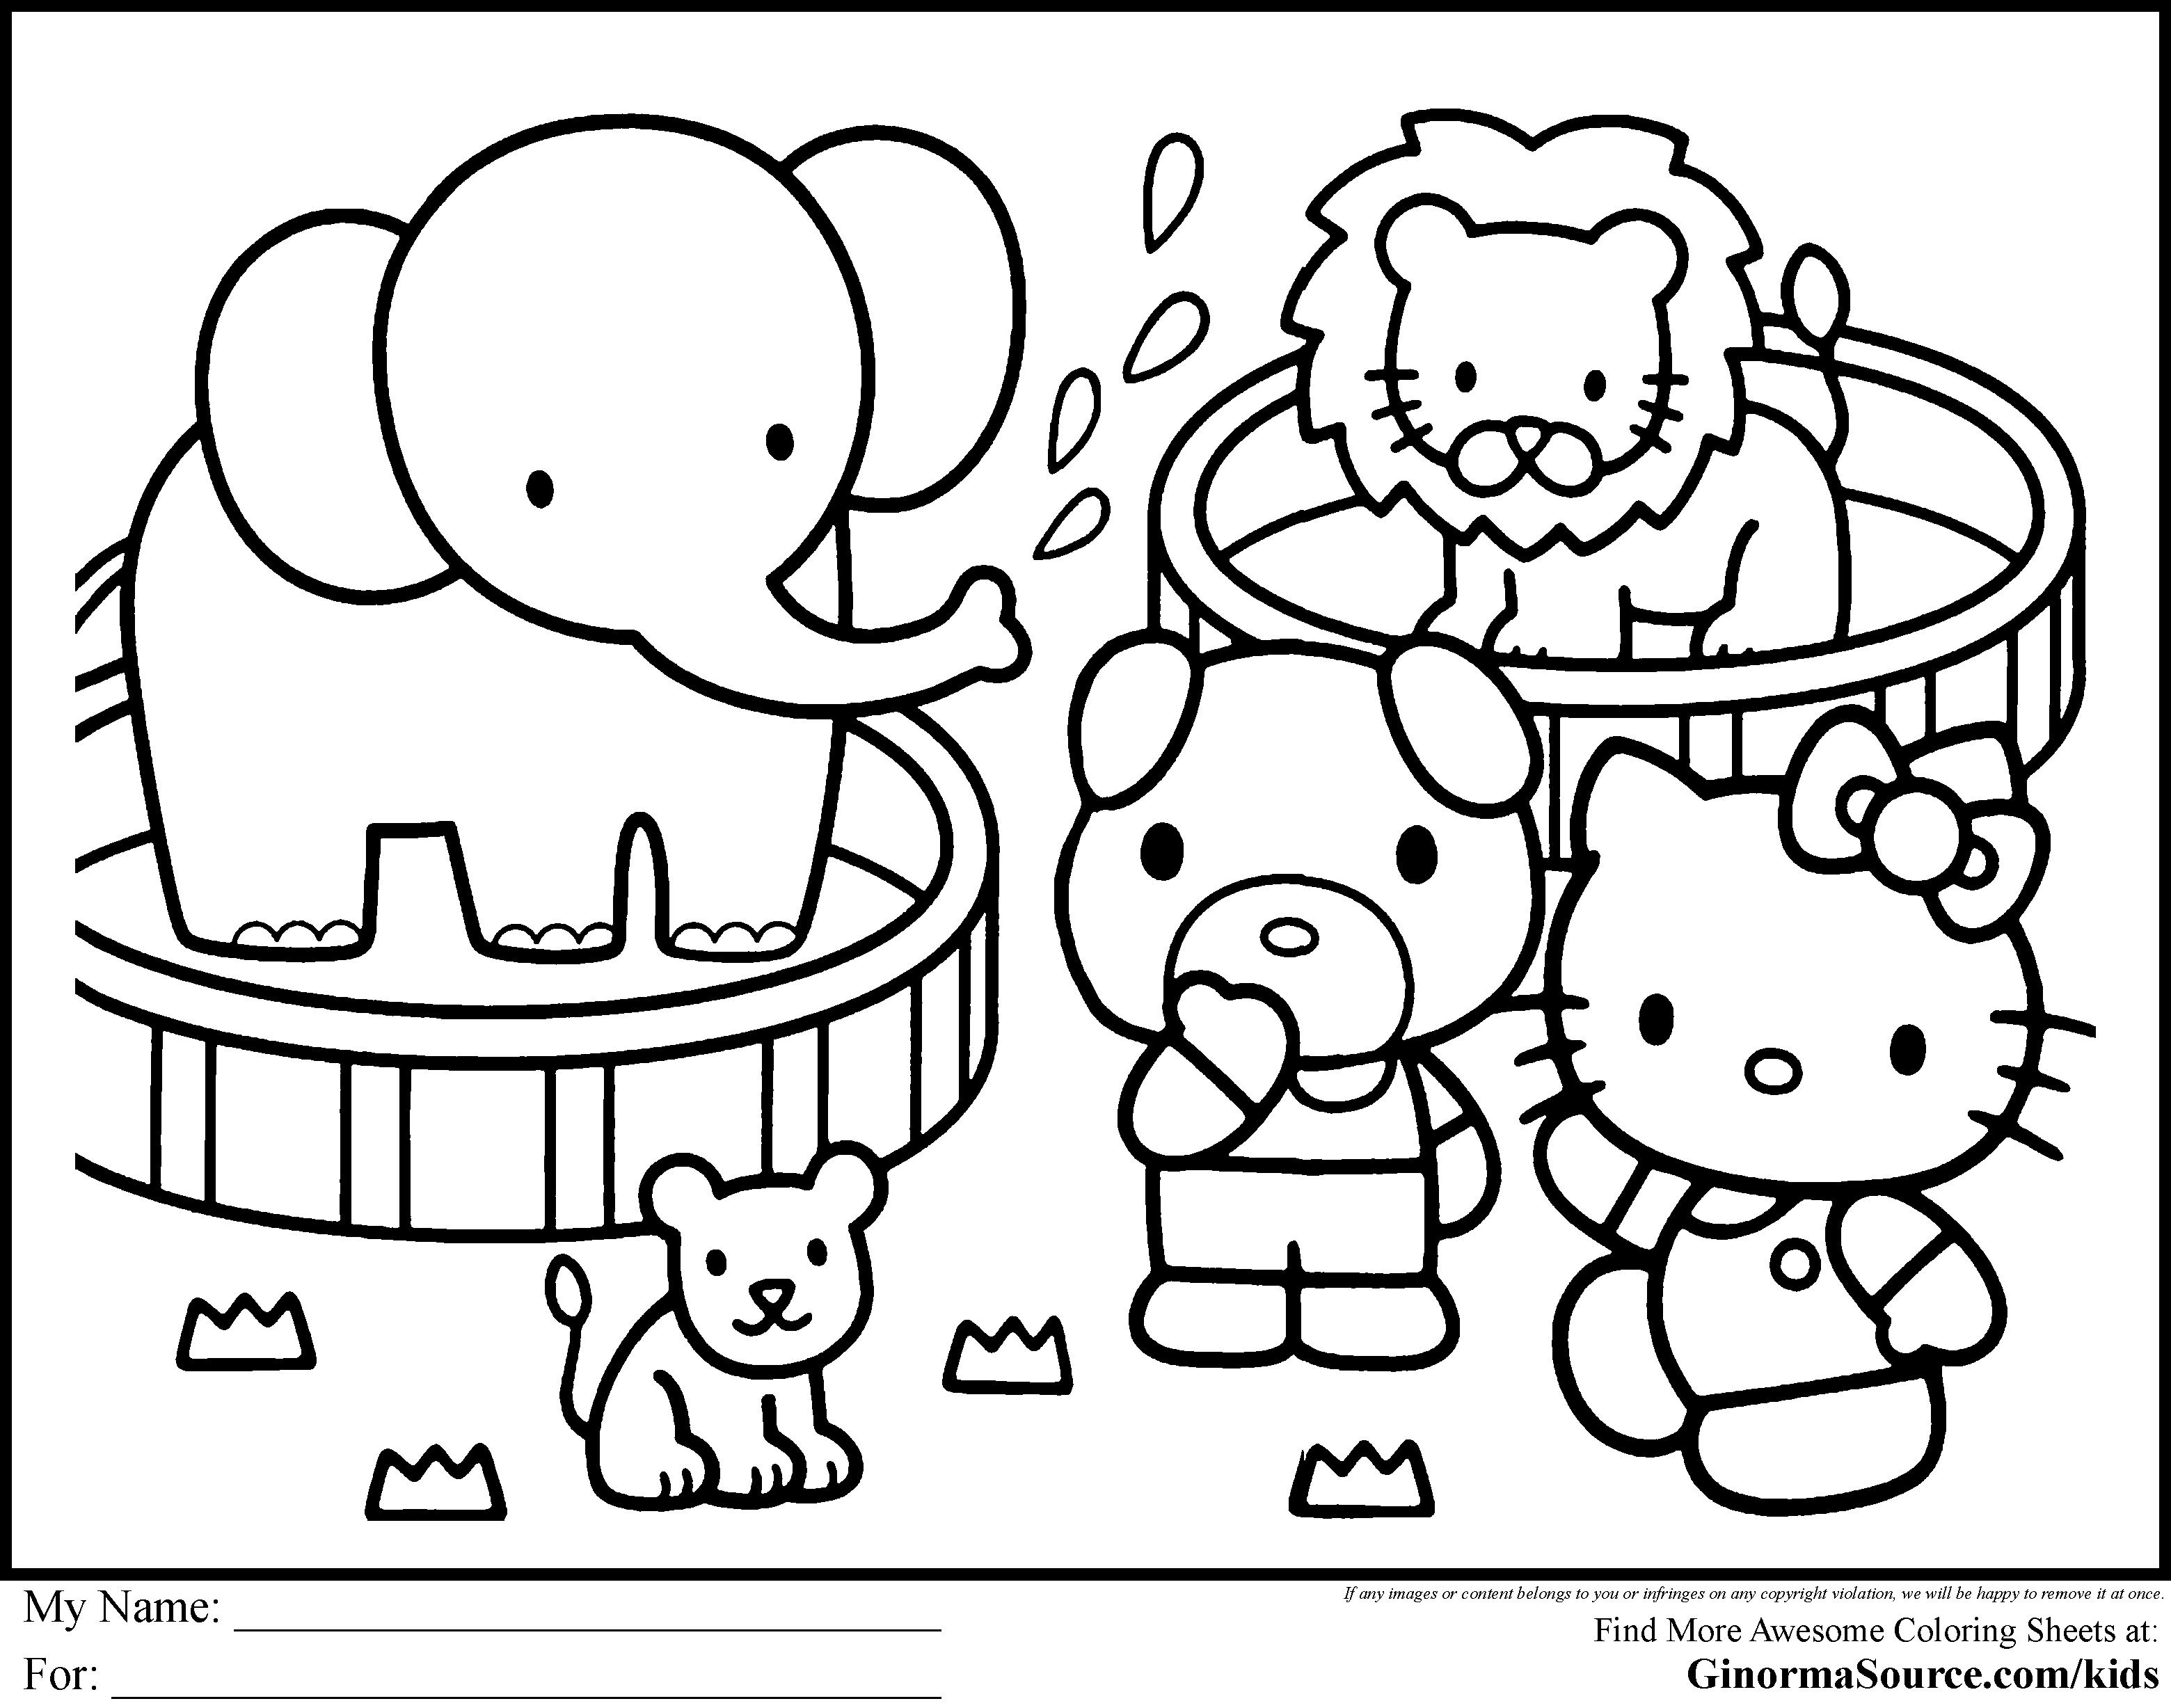 Free coloring pages for hello kitty - Hello Kitty Zoo Coloring Pages